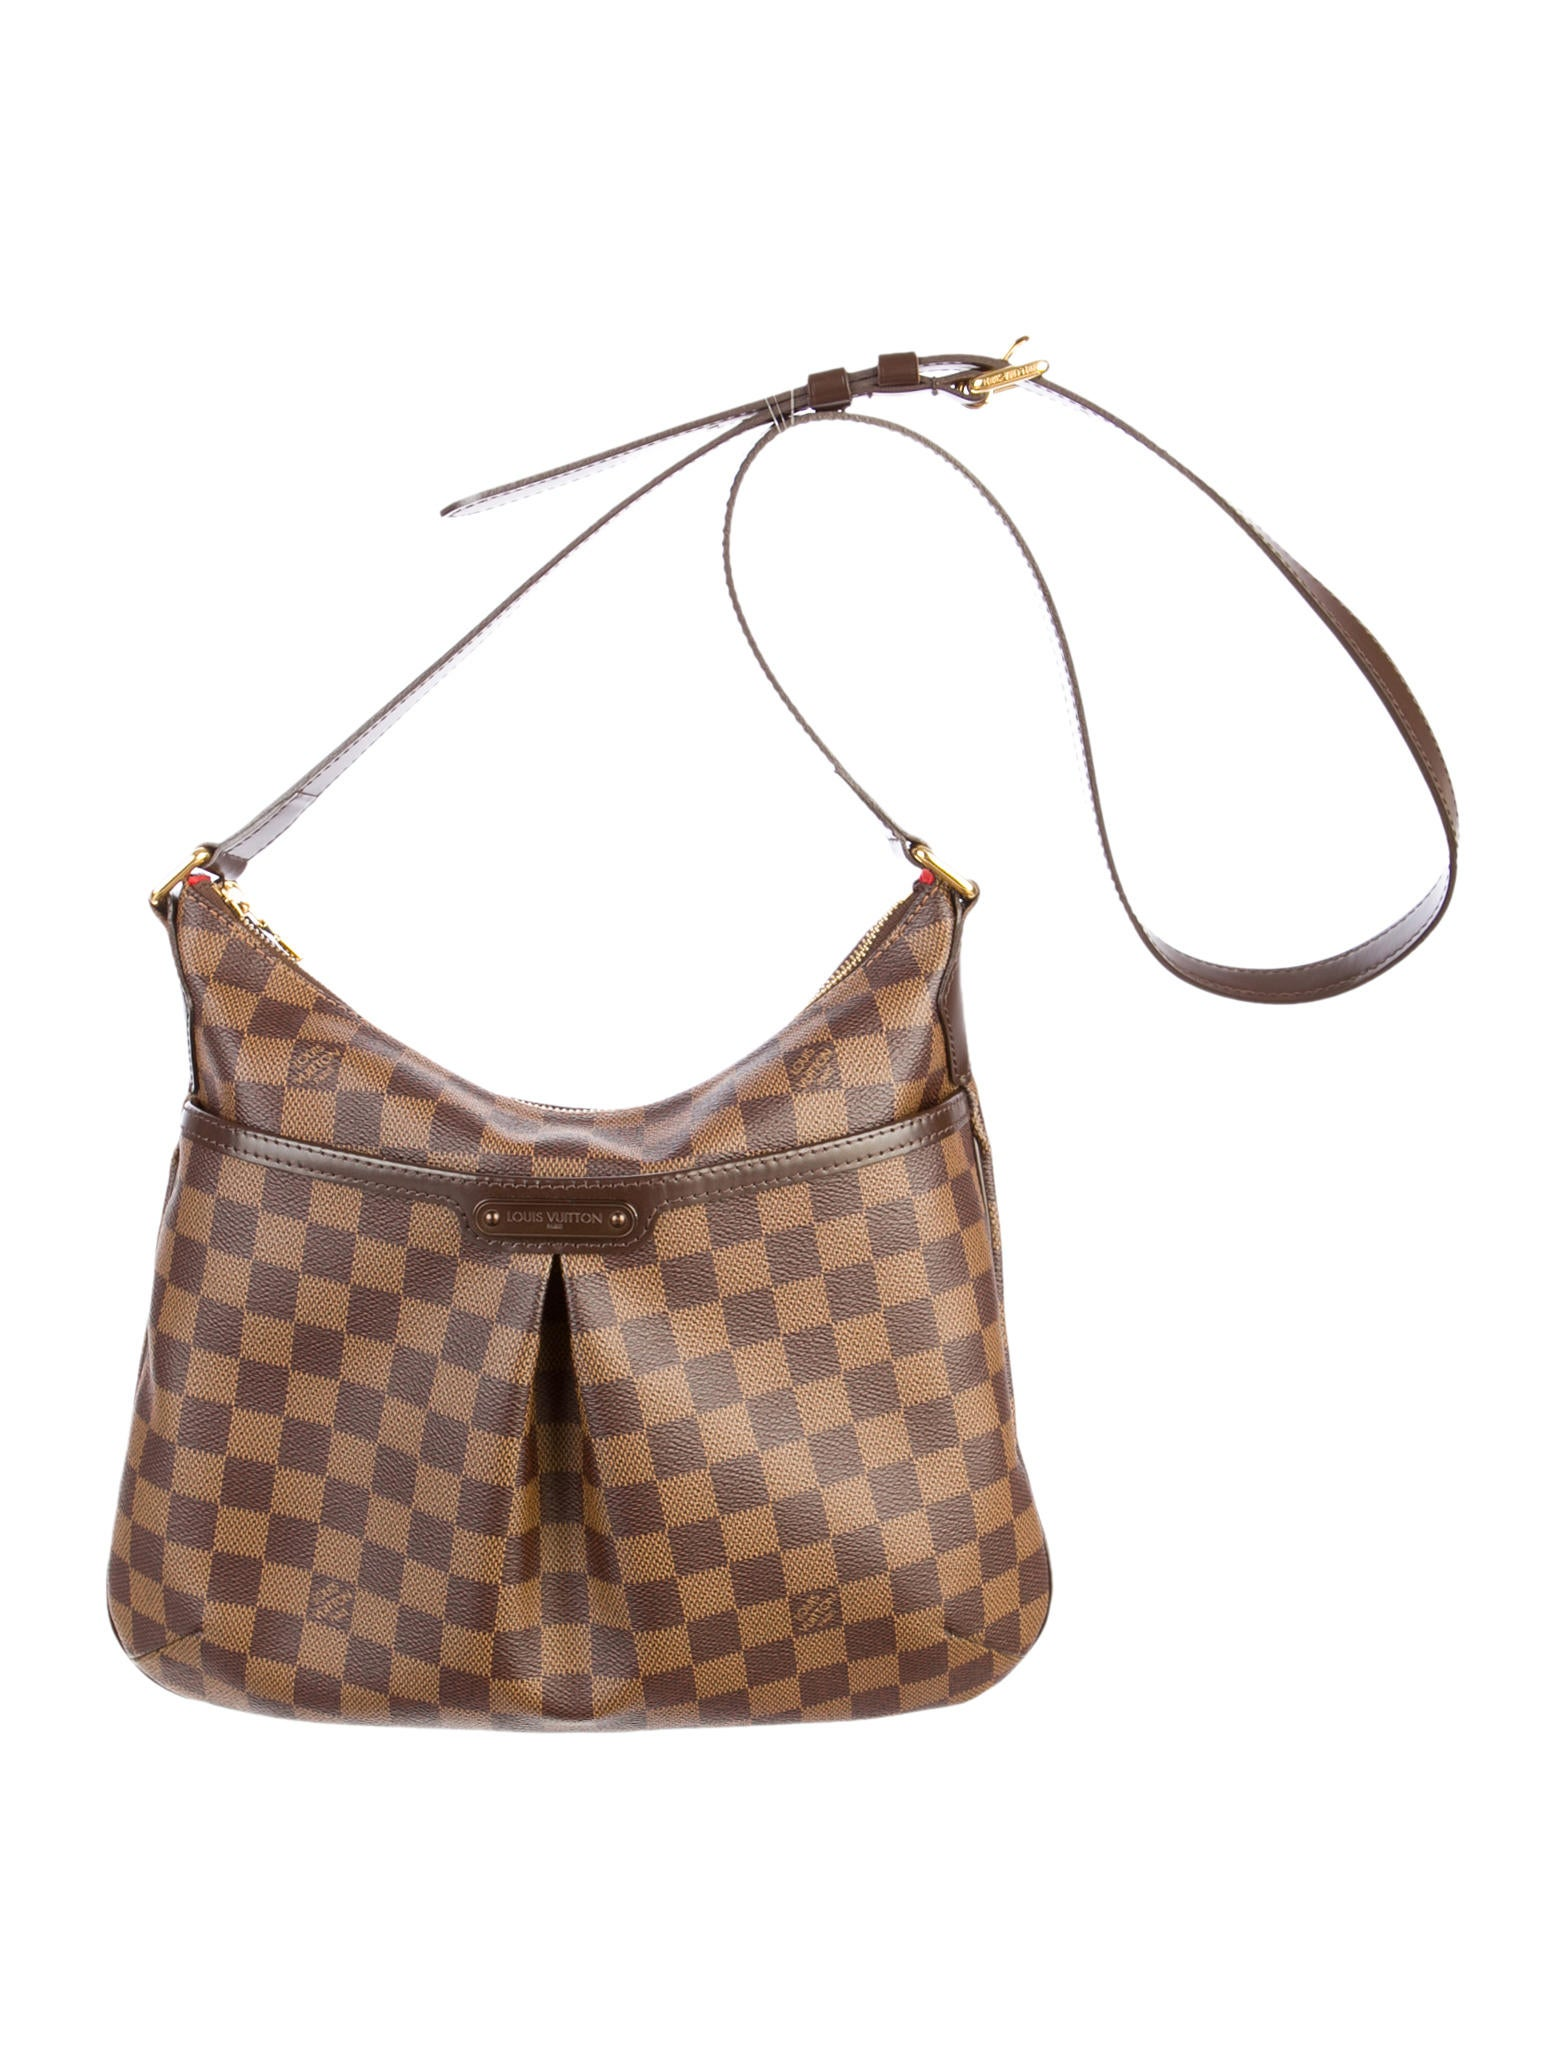 283ad04b26 Louis Vuitton Bloomsbury PM - Handbags - LOU34486